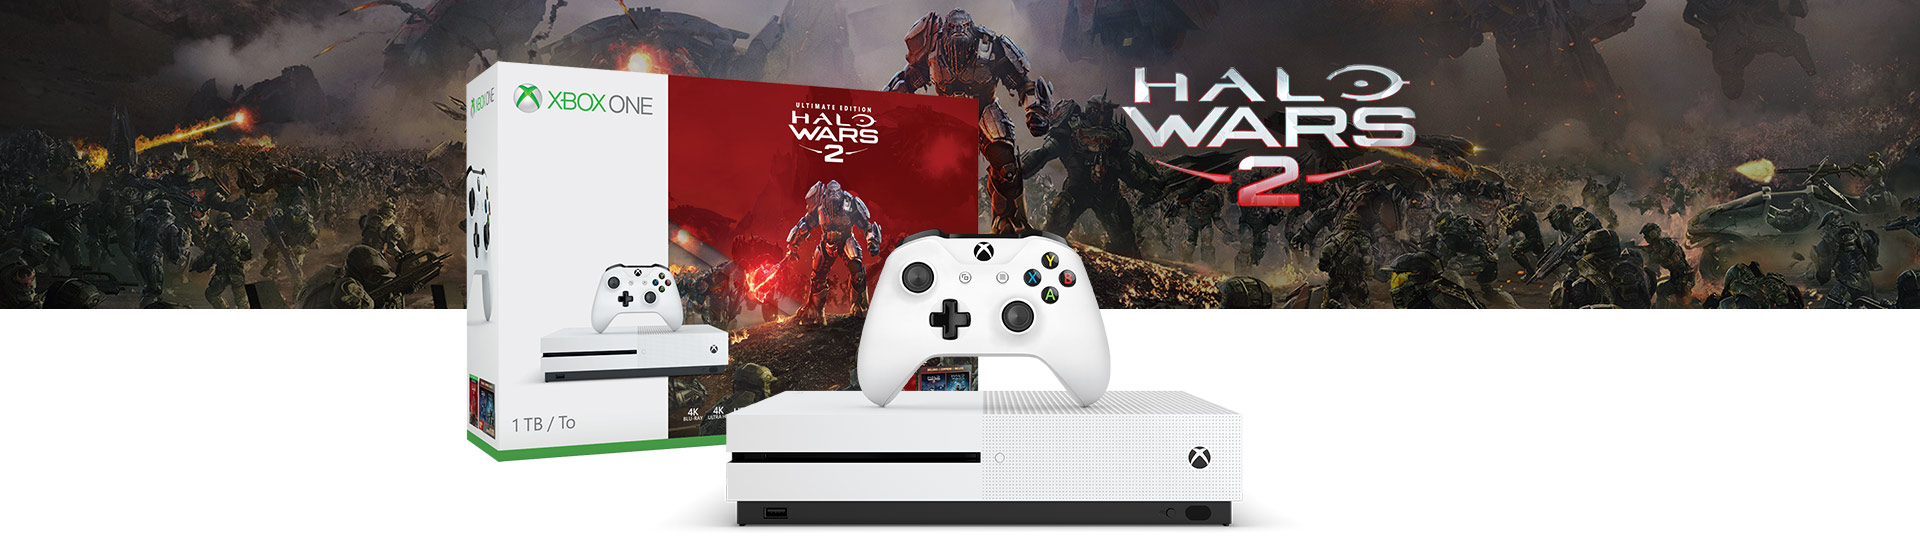 Xbox One S Halo Wars 2-Bundle